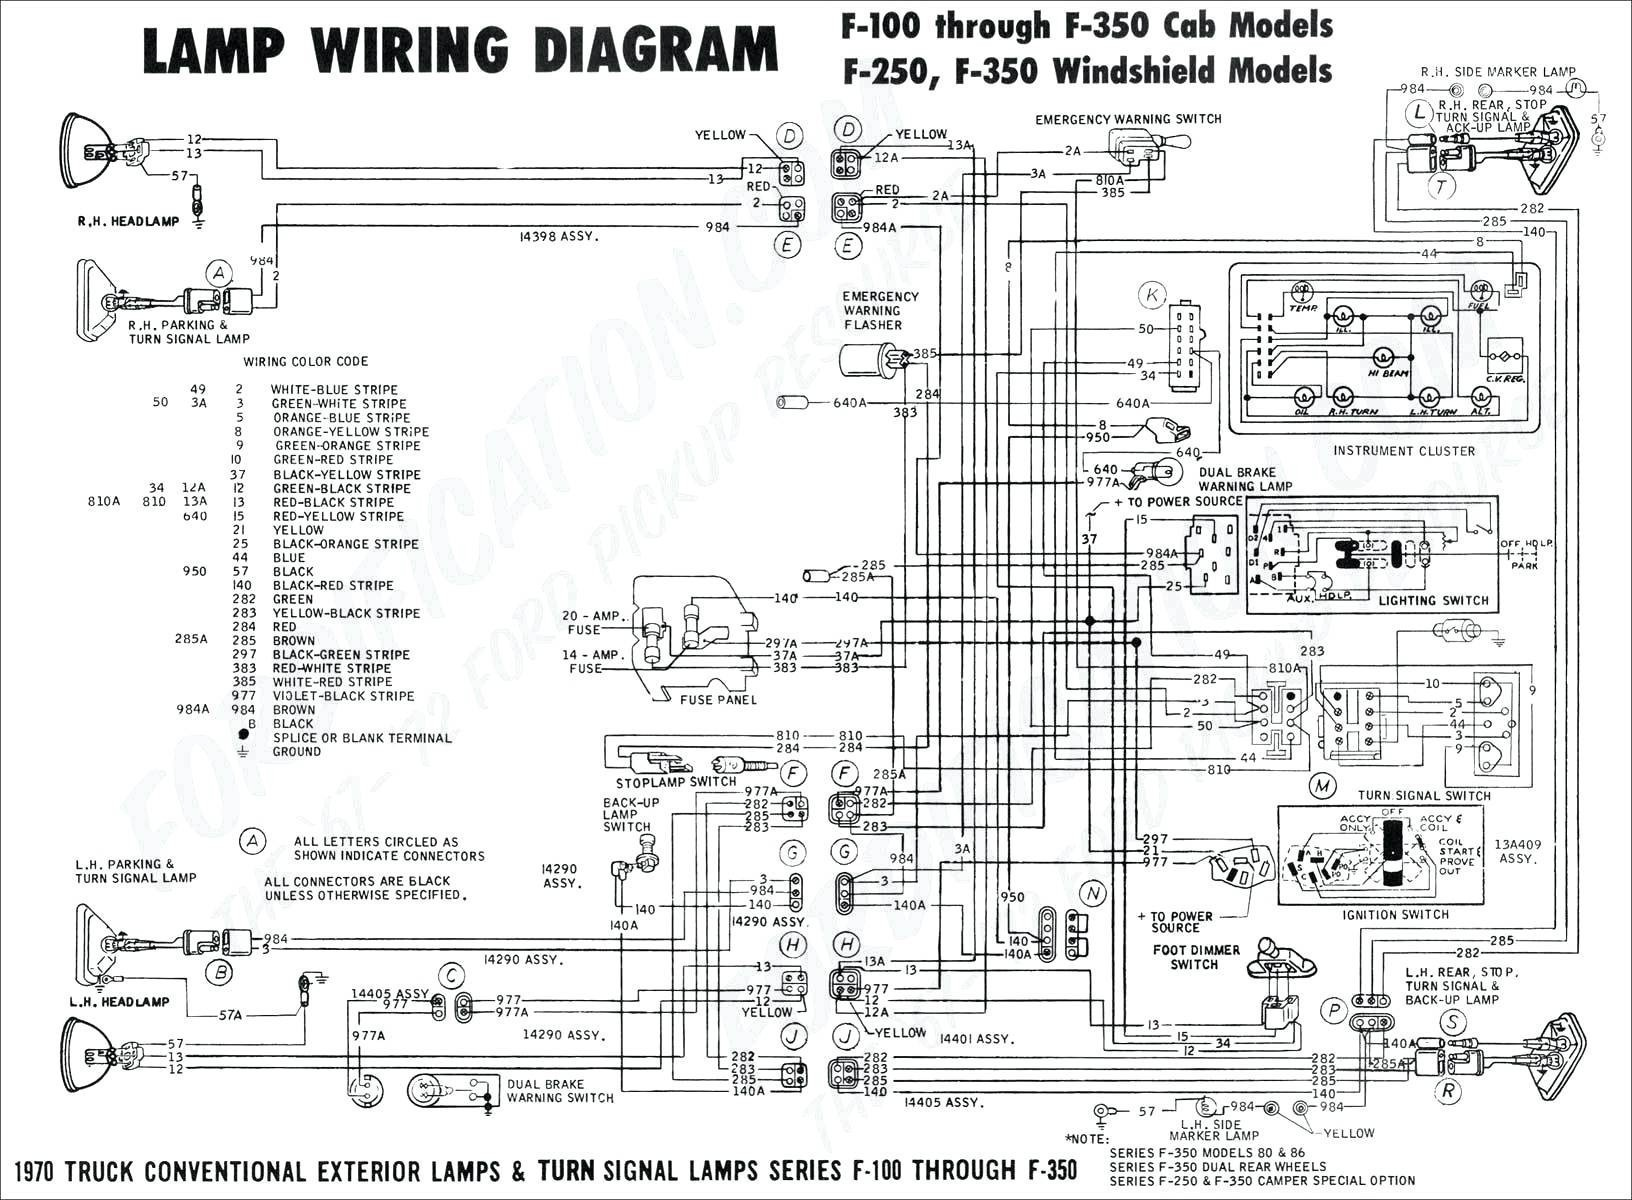 2002 Saturn Sl2 Engine Diagram Saturn Steering Column Wiring Diagram Worksheet and Wiring Diagram • Of 2002 Saturn Sl2 Engine Diagram Saturn Steering Column Wiring Diagram Worksheet and Wiring Diagram •